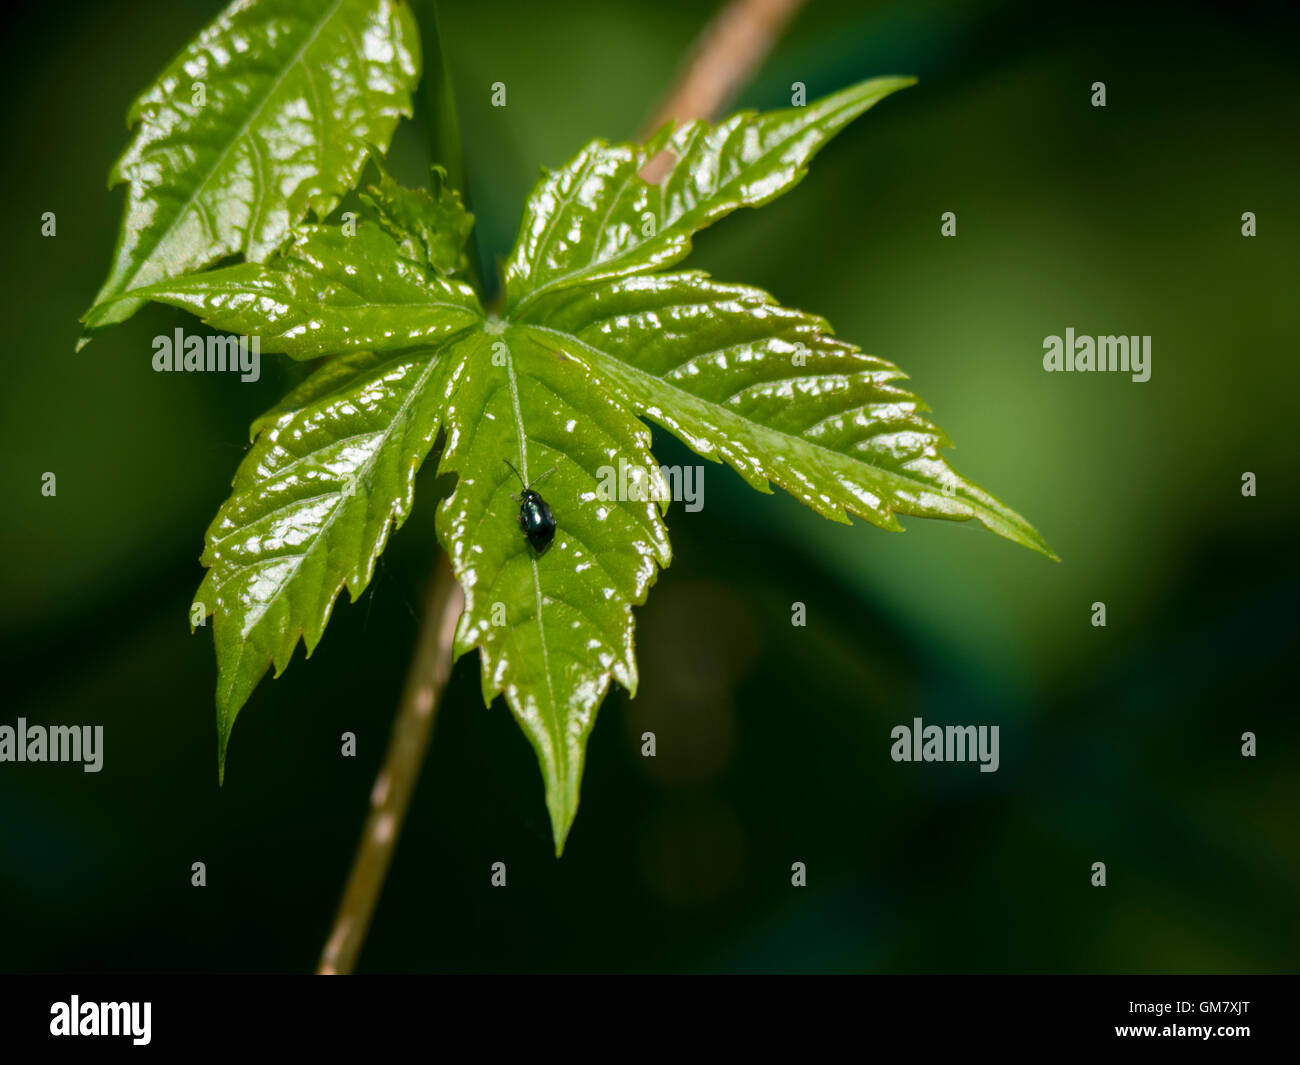 Bug on a pointy leaf - Stock Image